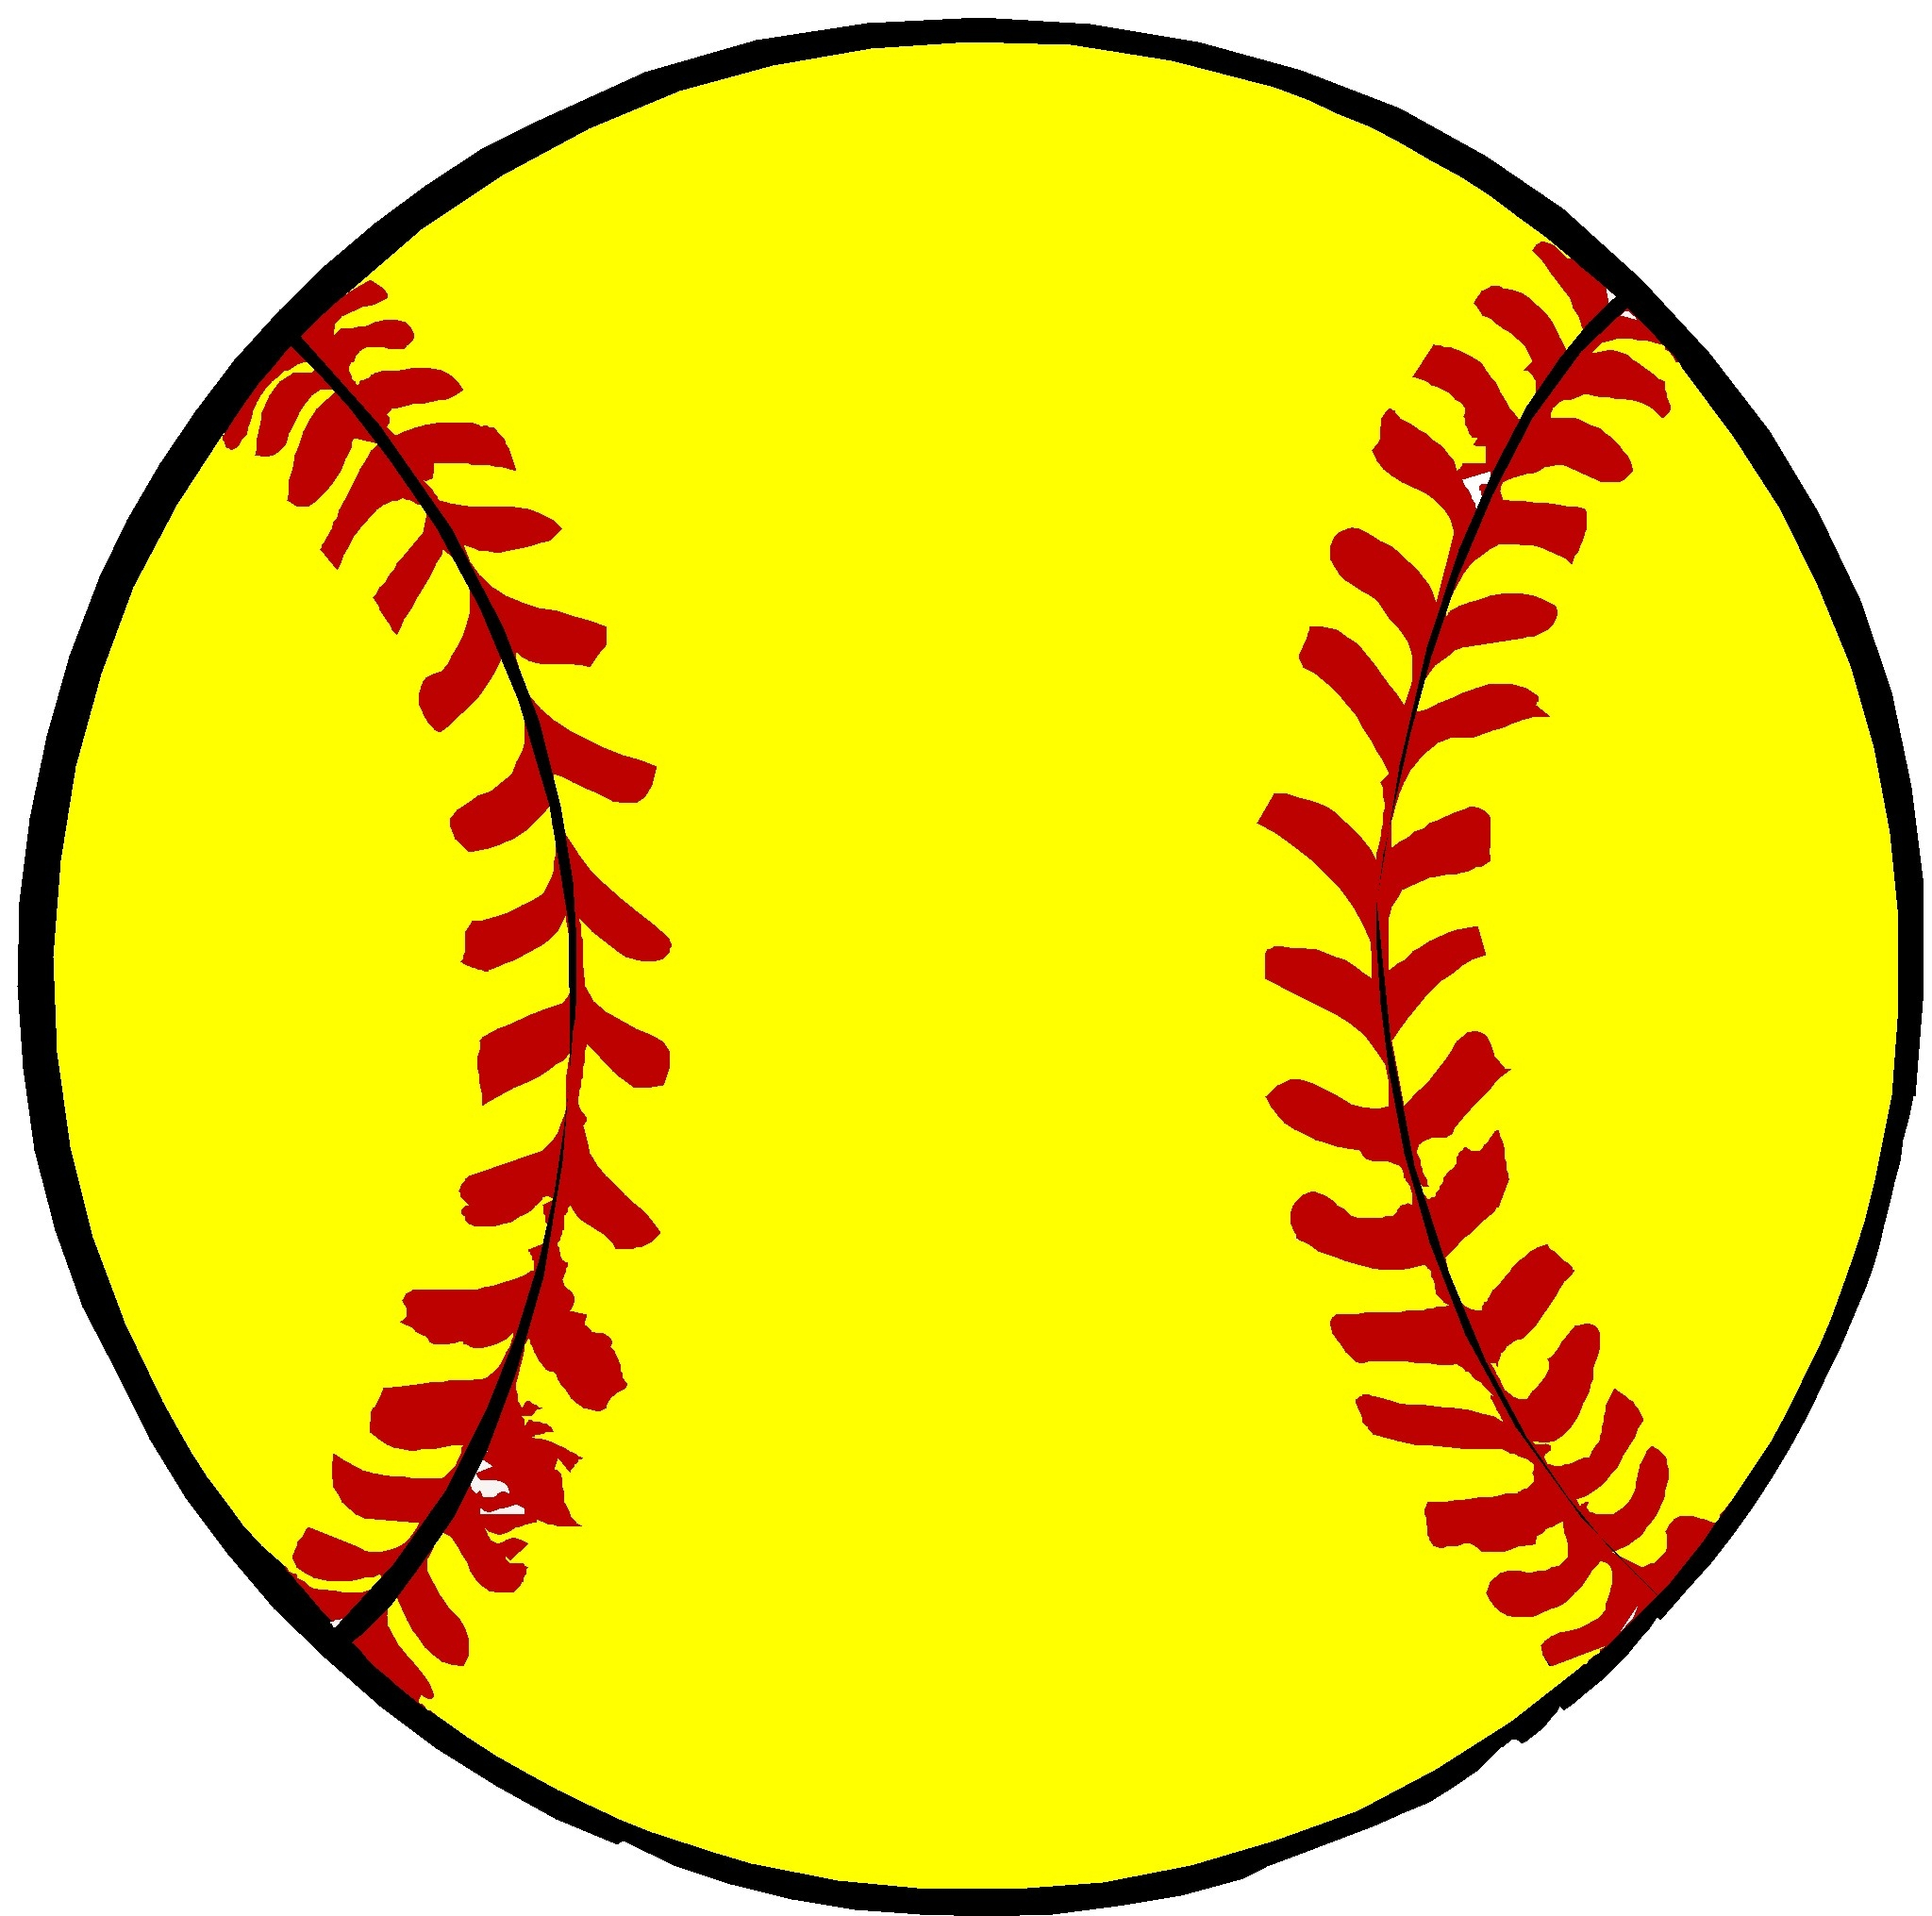 Softball clipart slow pitch softball. Free cute cliparts download